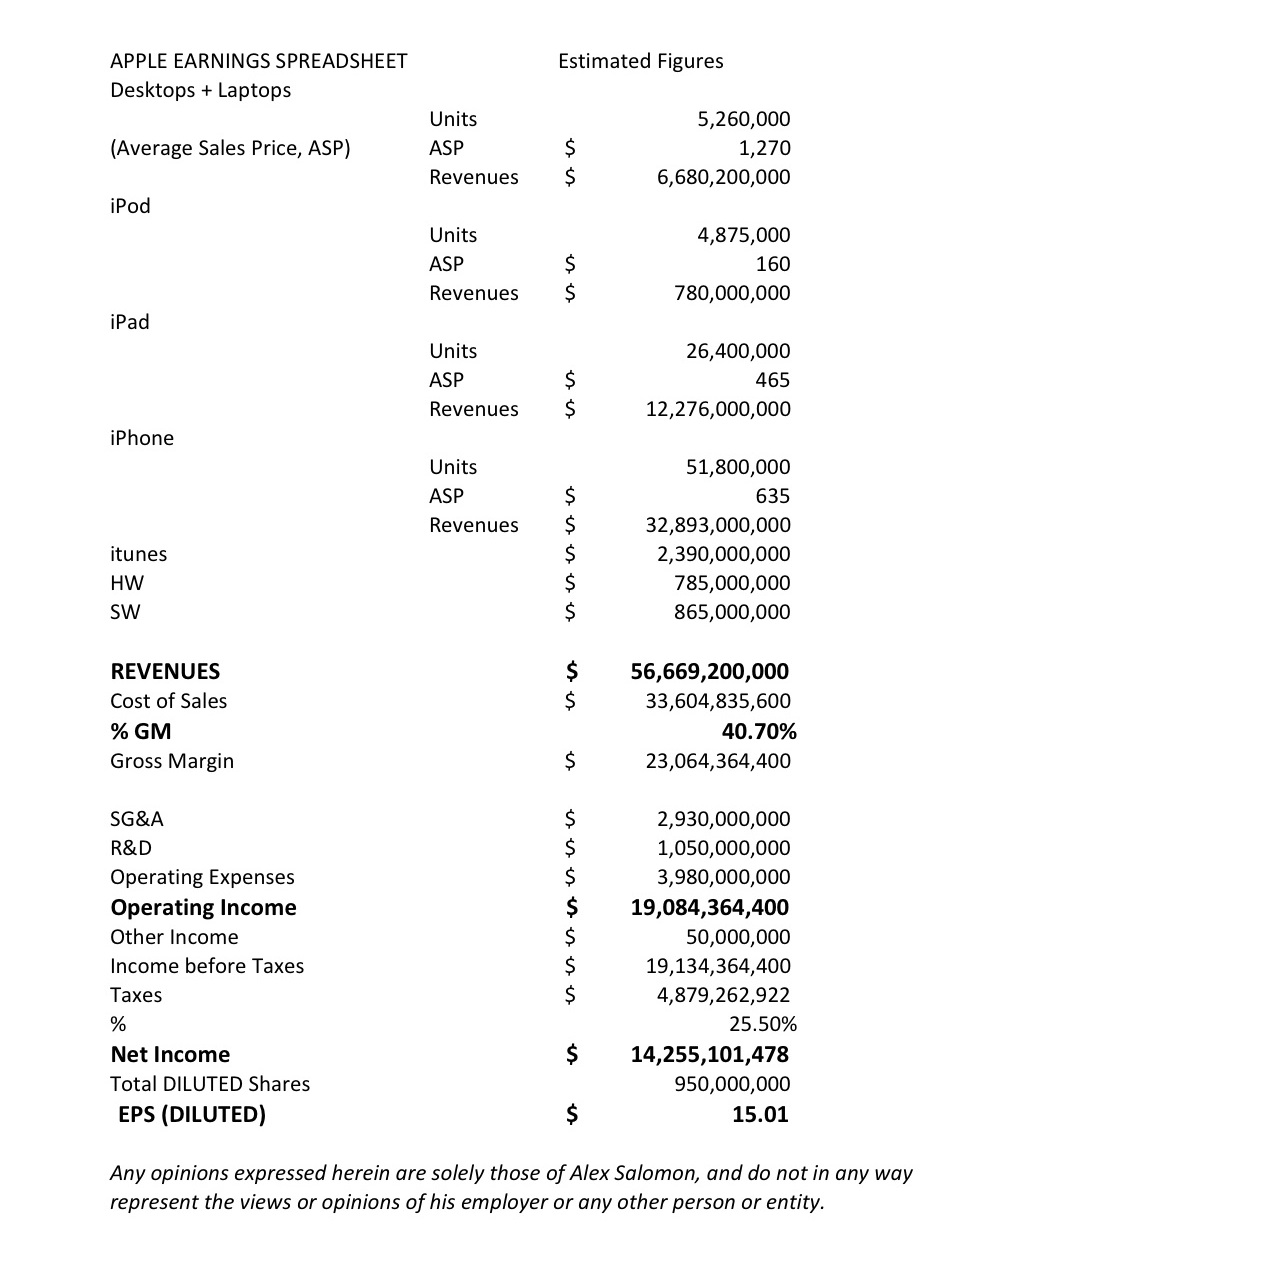 Apple stock earnings estimates spreadsheet, 1Q 2013